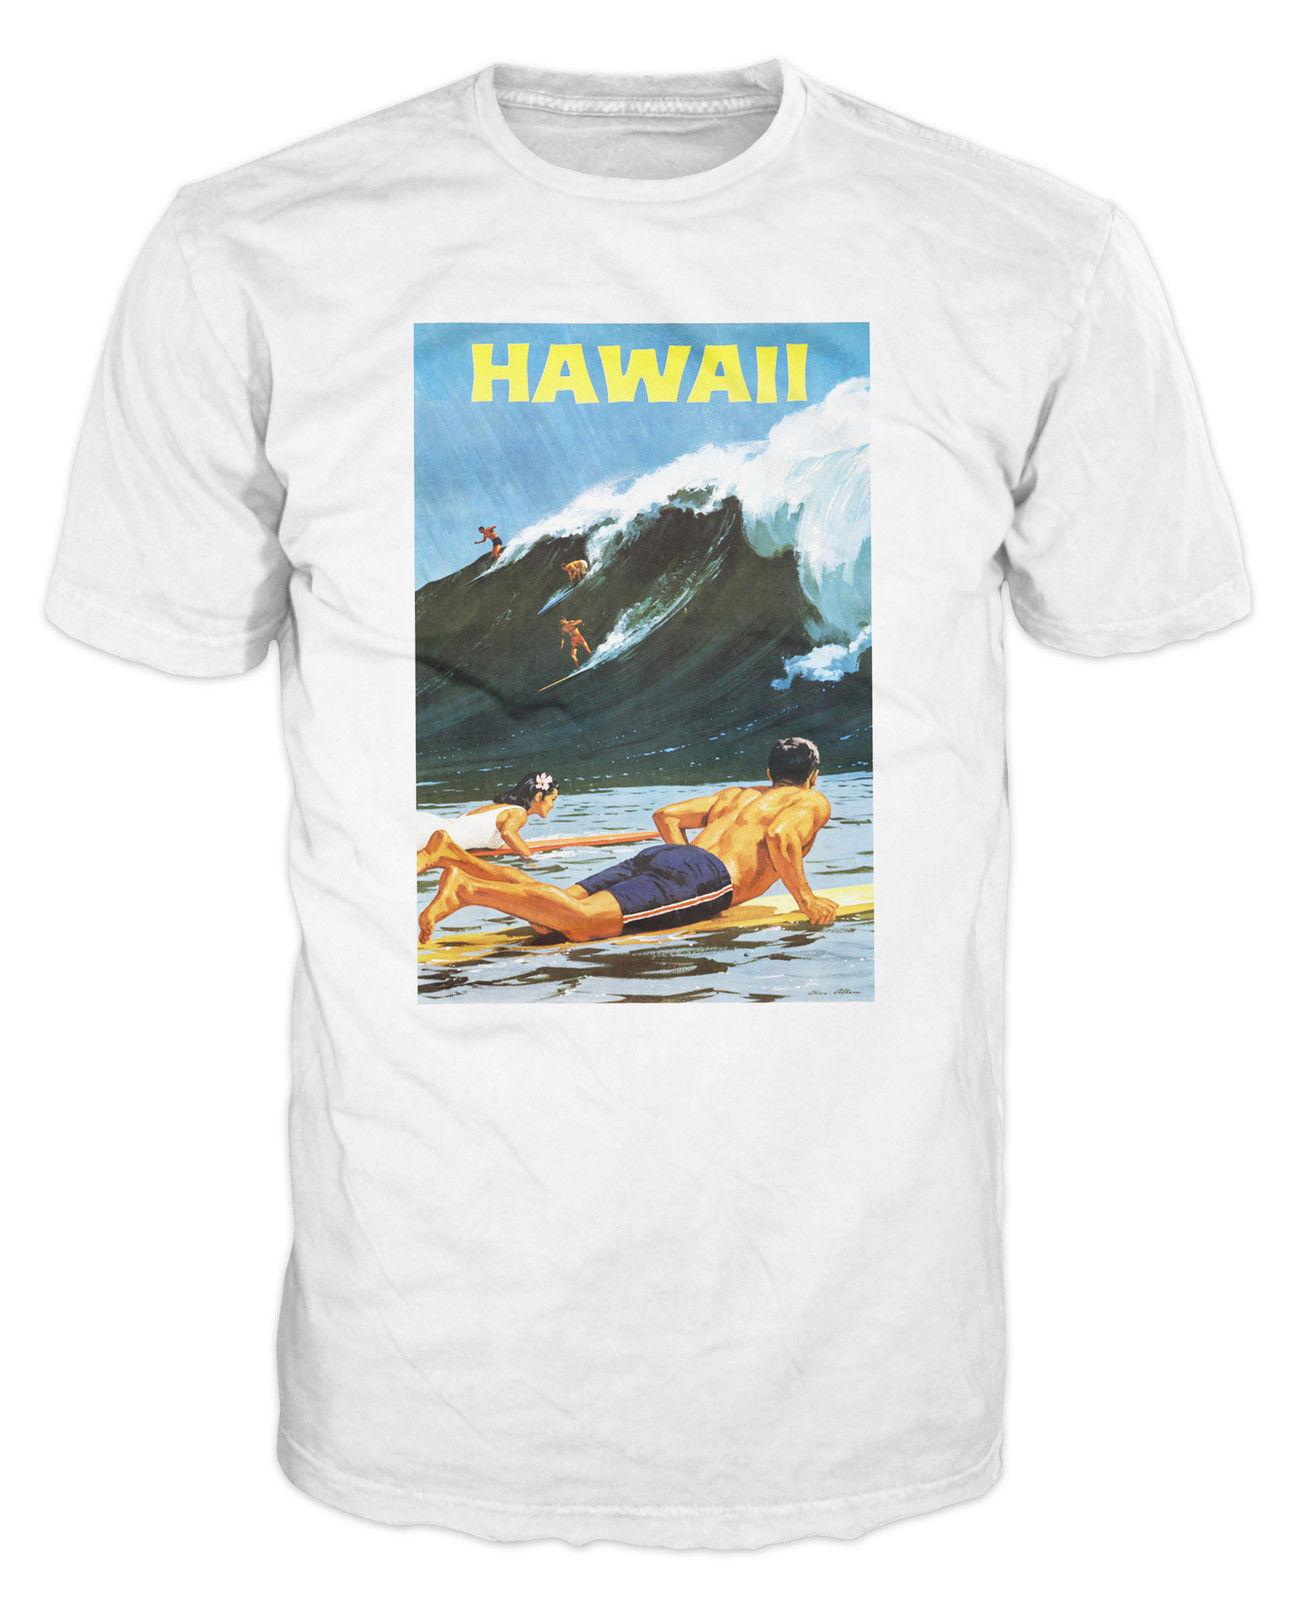 cf1429ea Hawaii Surf Shop T Shirts – EDGE Engineering and Consulting Limited